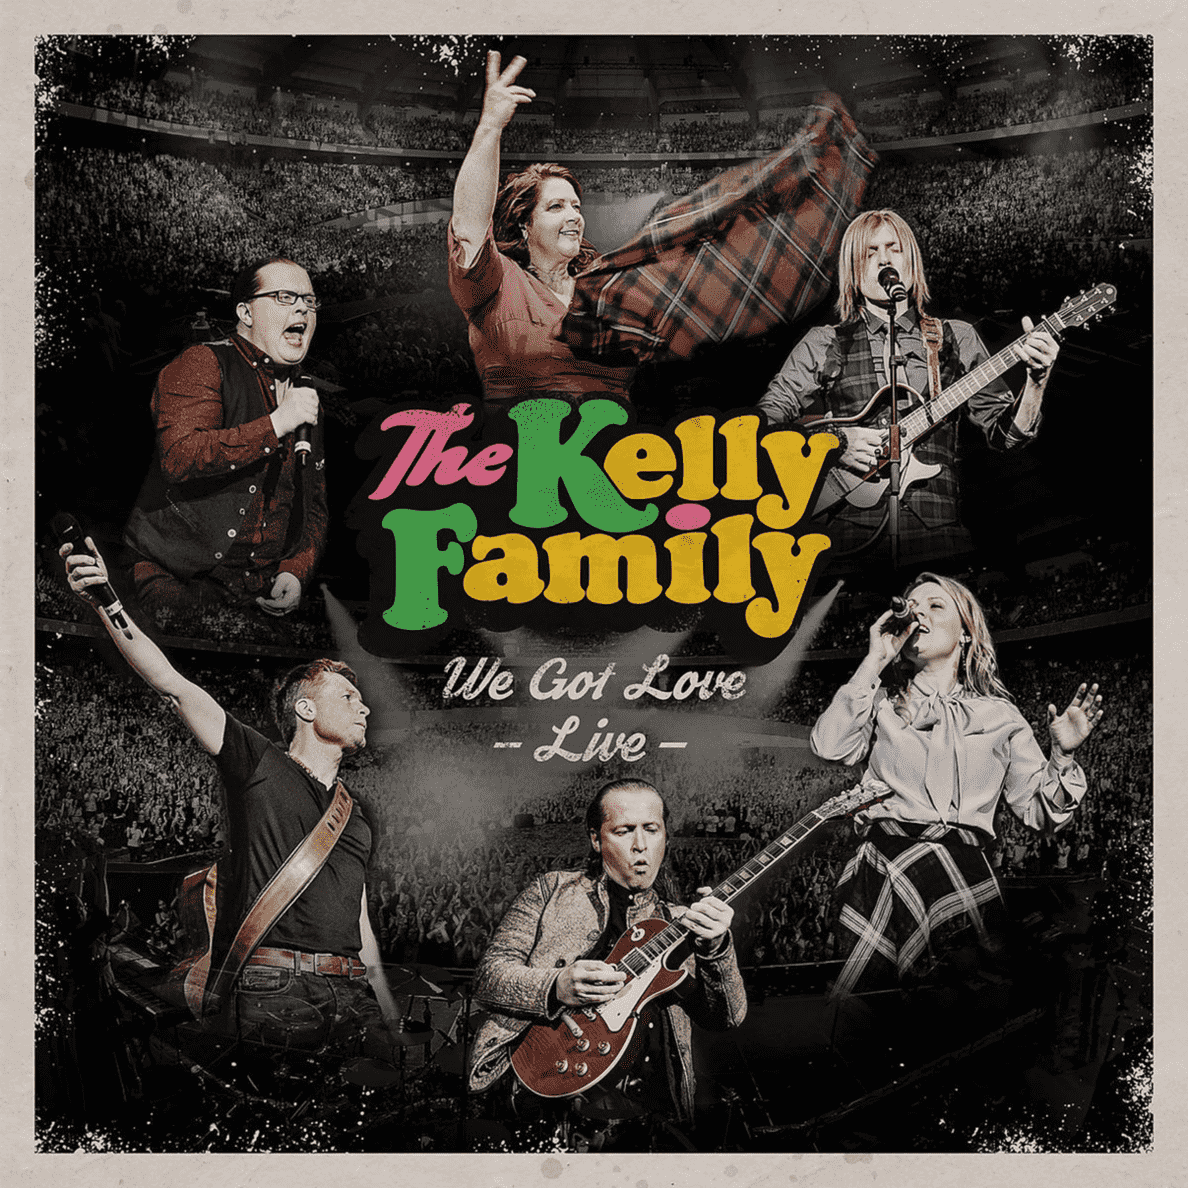 The Kelly Family - We Got Love-Live - (CD)